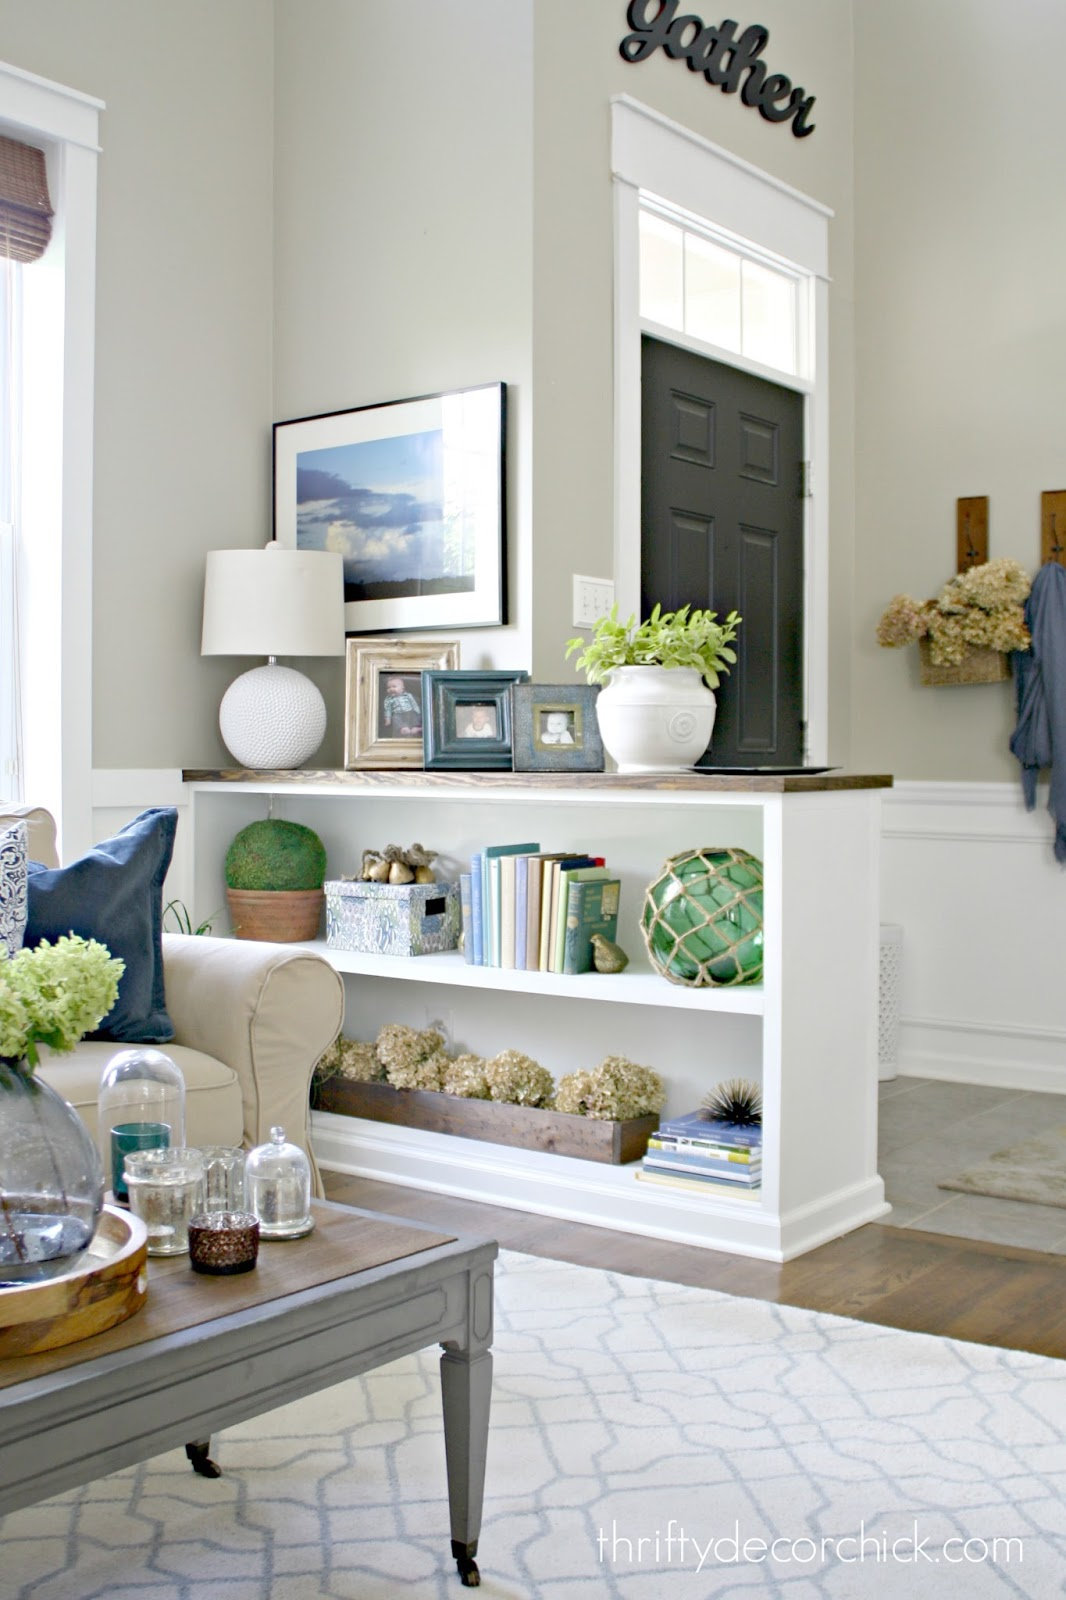 How to give a new house tons of character from Thrifty